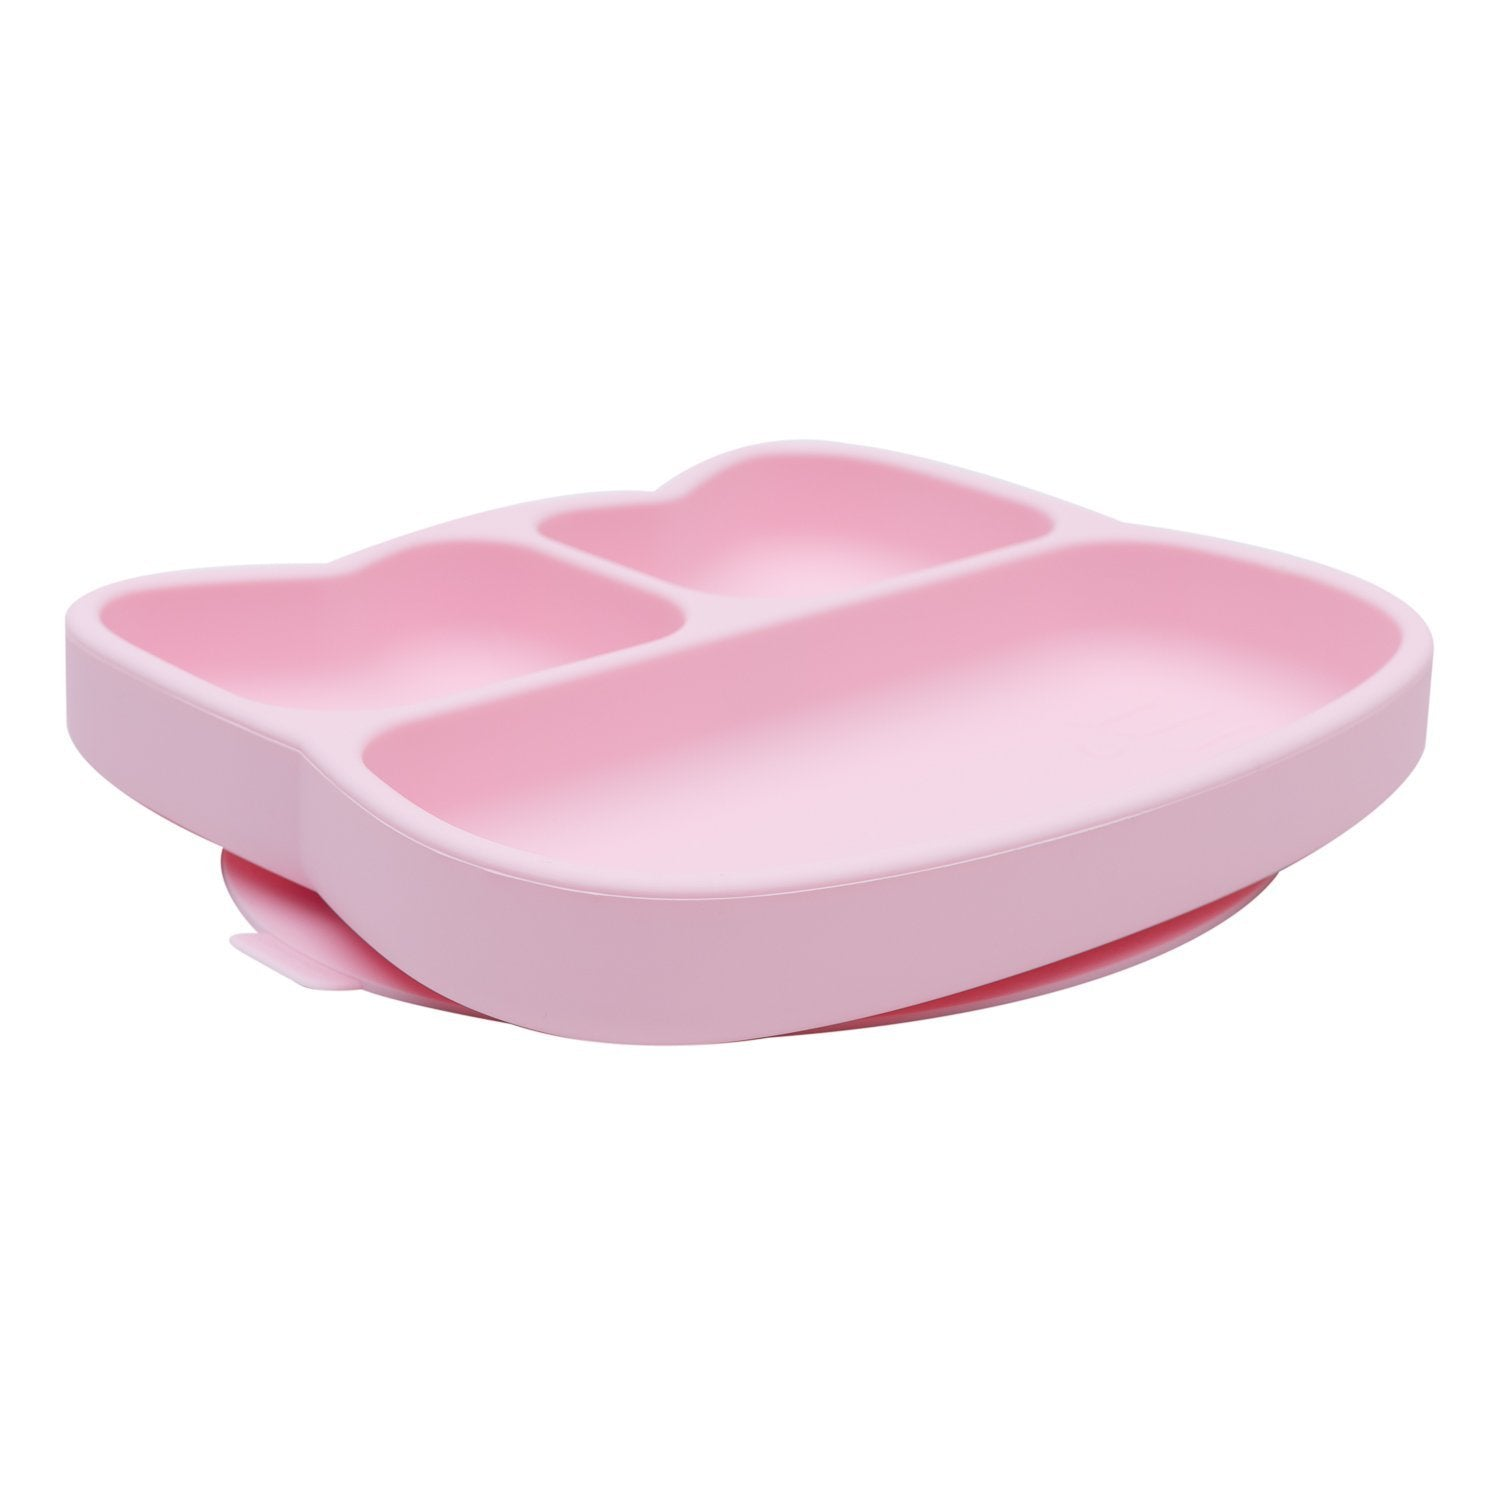 We Might Be Tiny - Cat Stickie Plate (Powder Pink)